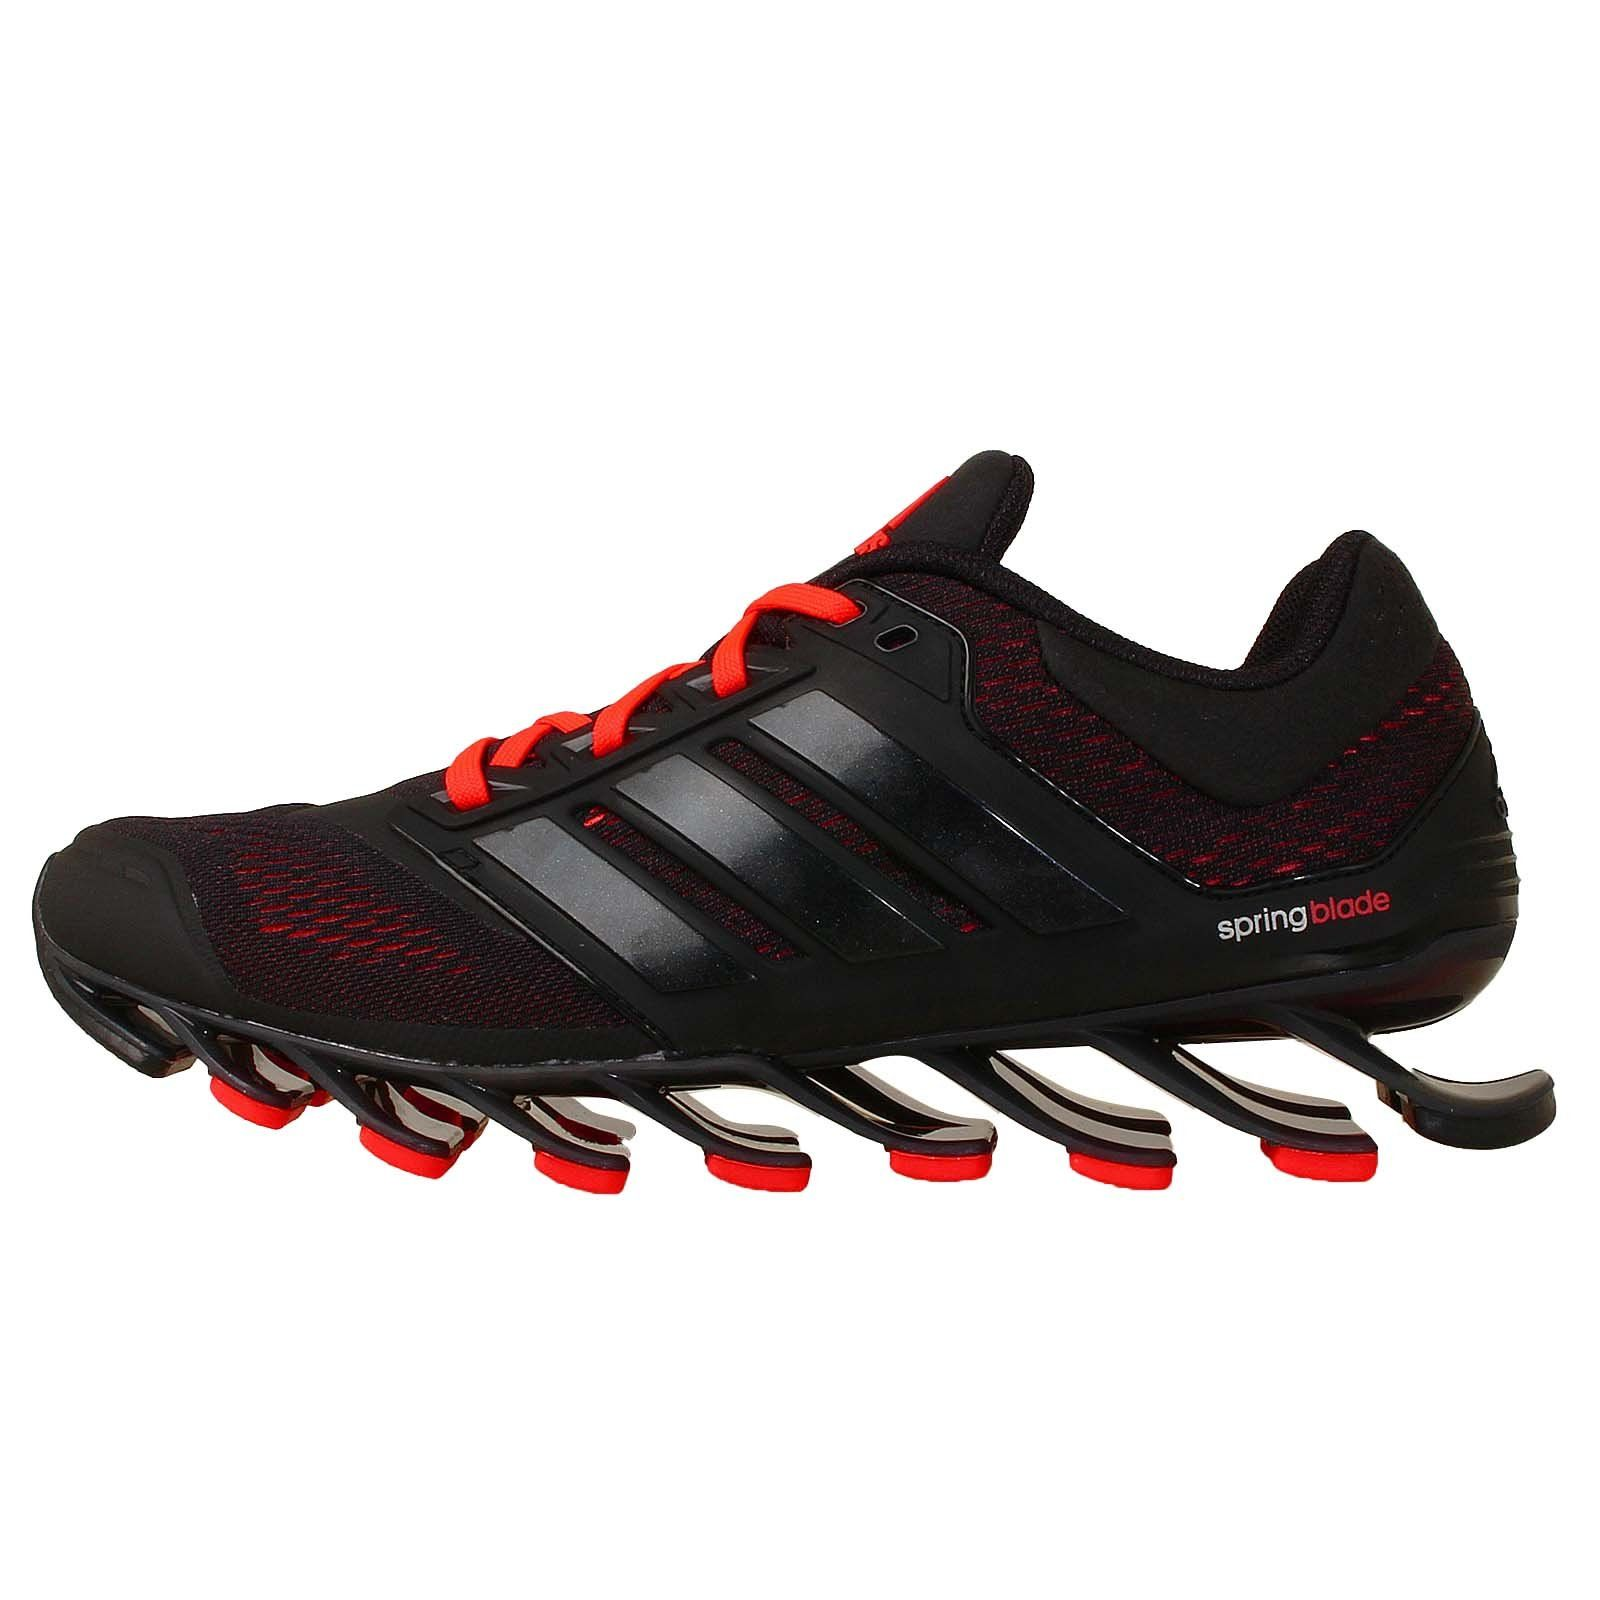 premium selection b4091 0b85b Amazon.com  adidas Performance Men s Springblade Drive M Running Shoe  Shoes